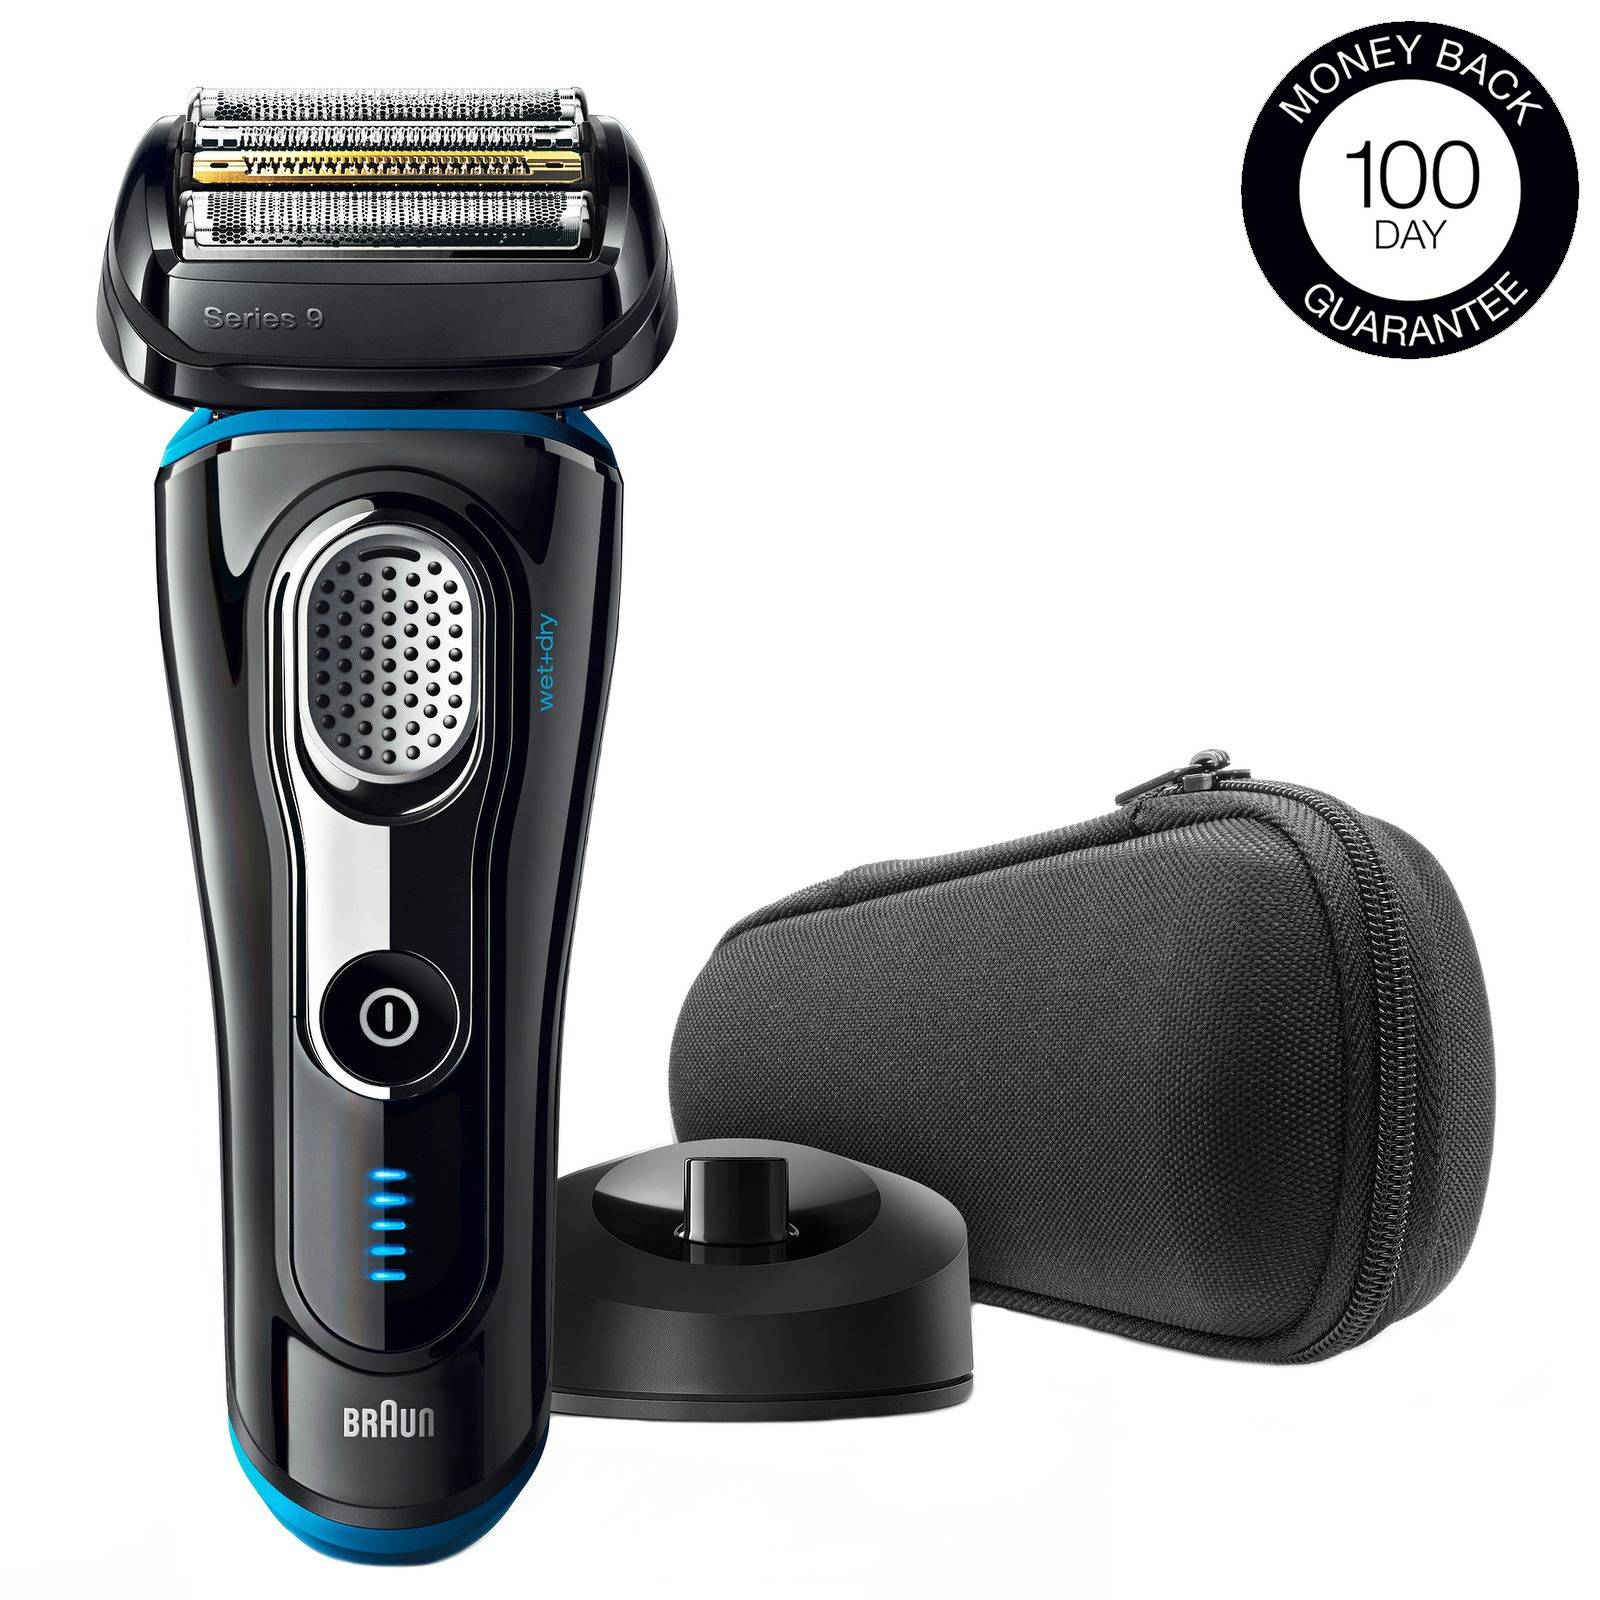 Braun - Series Shavers Series 9 9240s Electric Shaver Black for Men